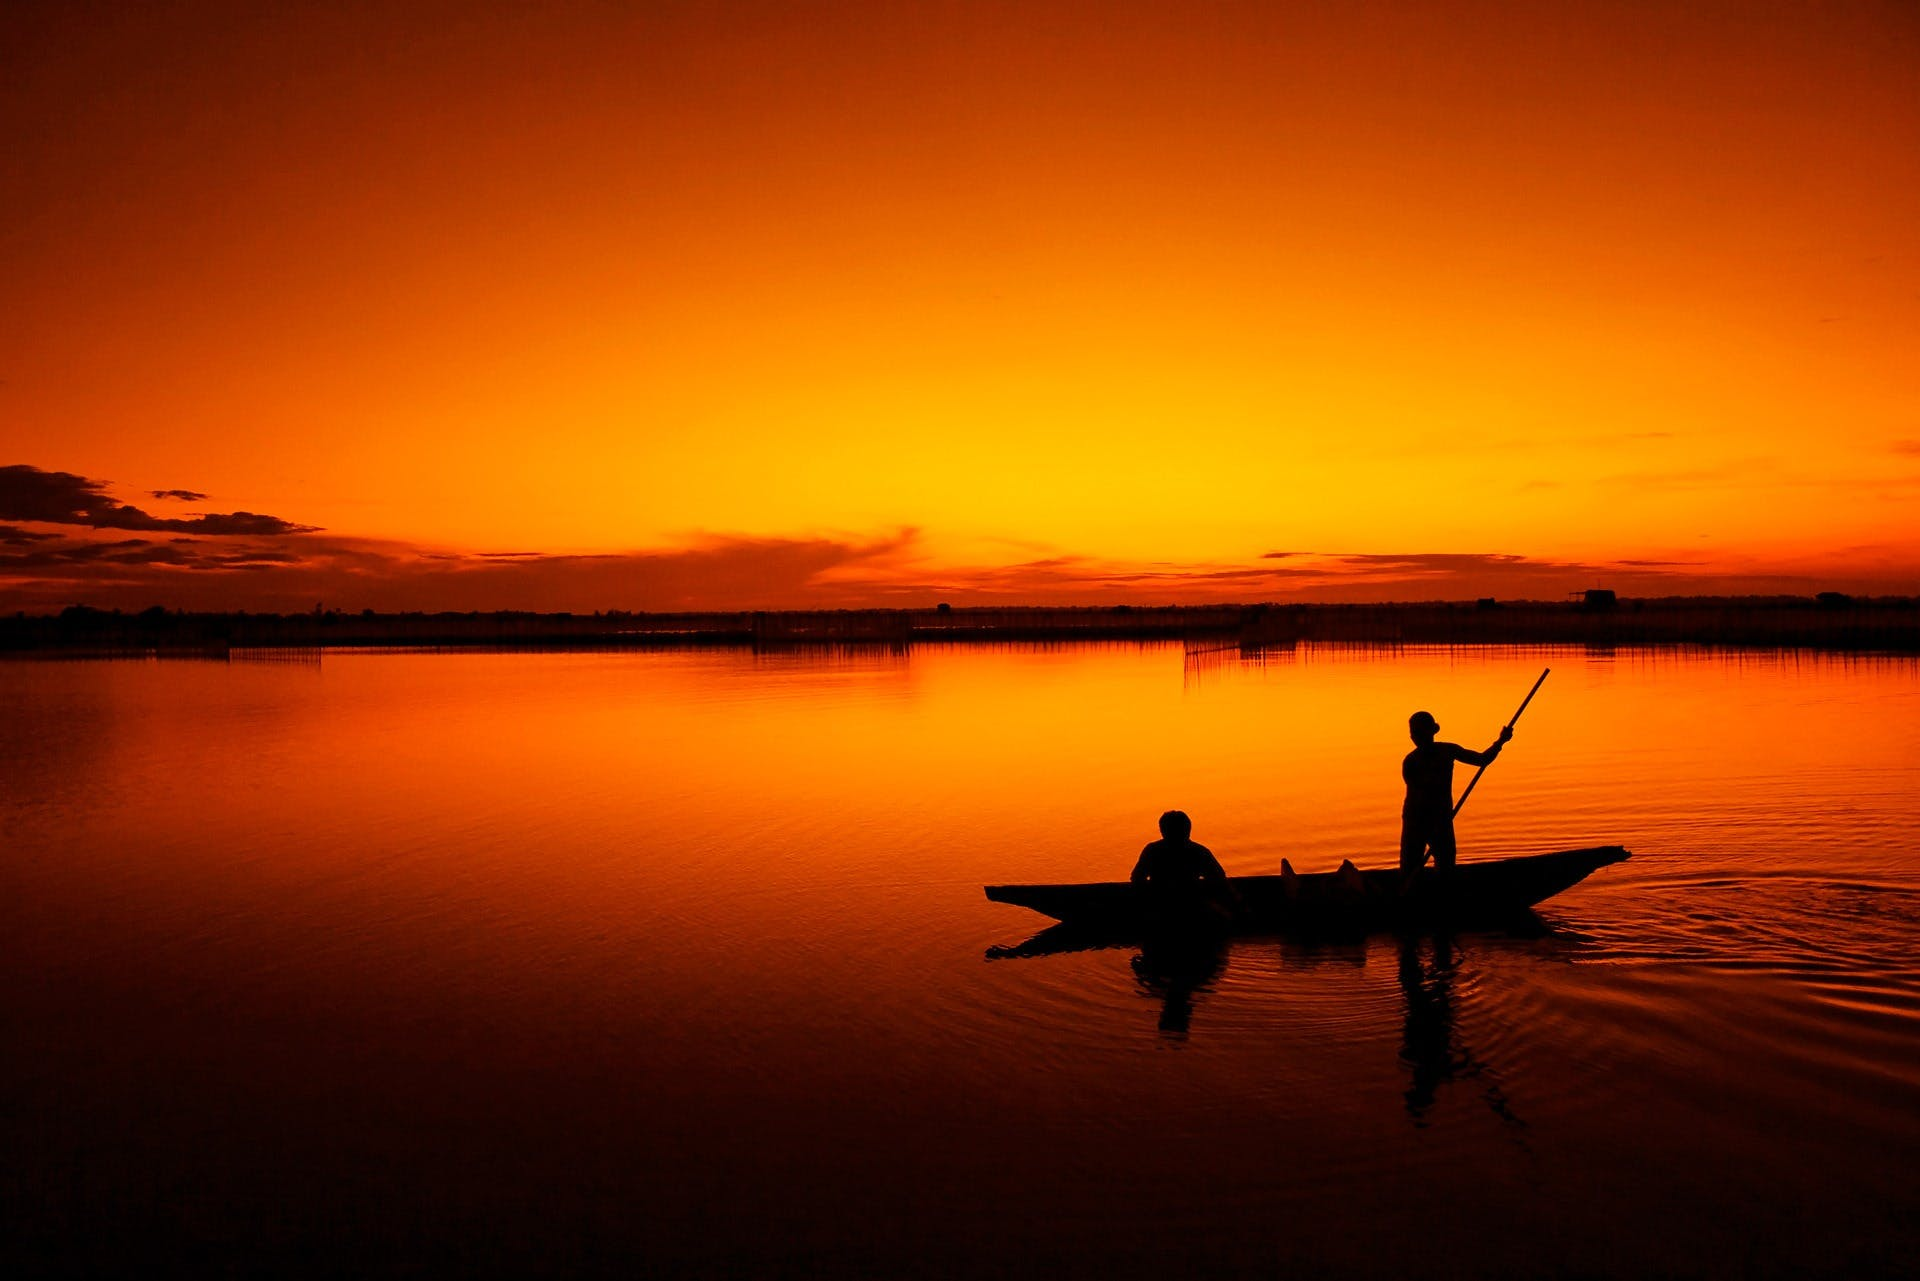 2 People on a Boat during Sunset